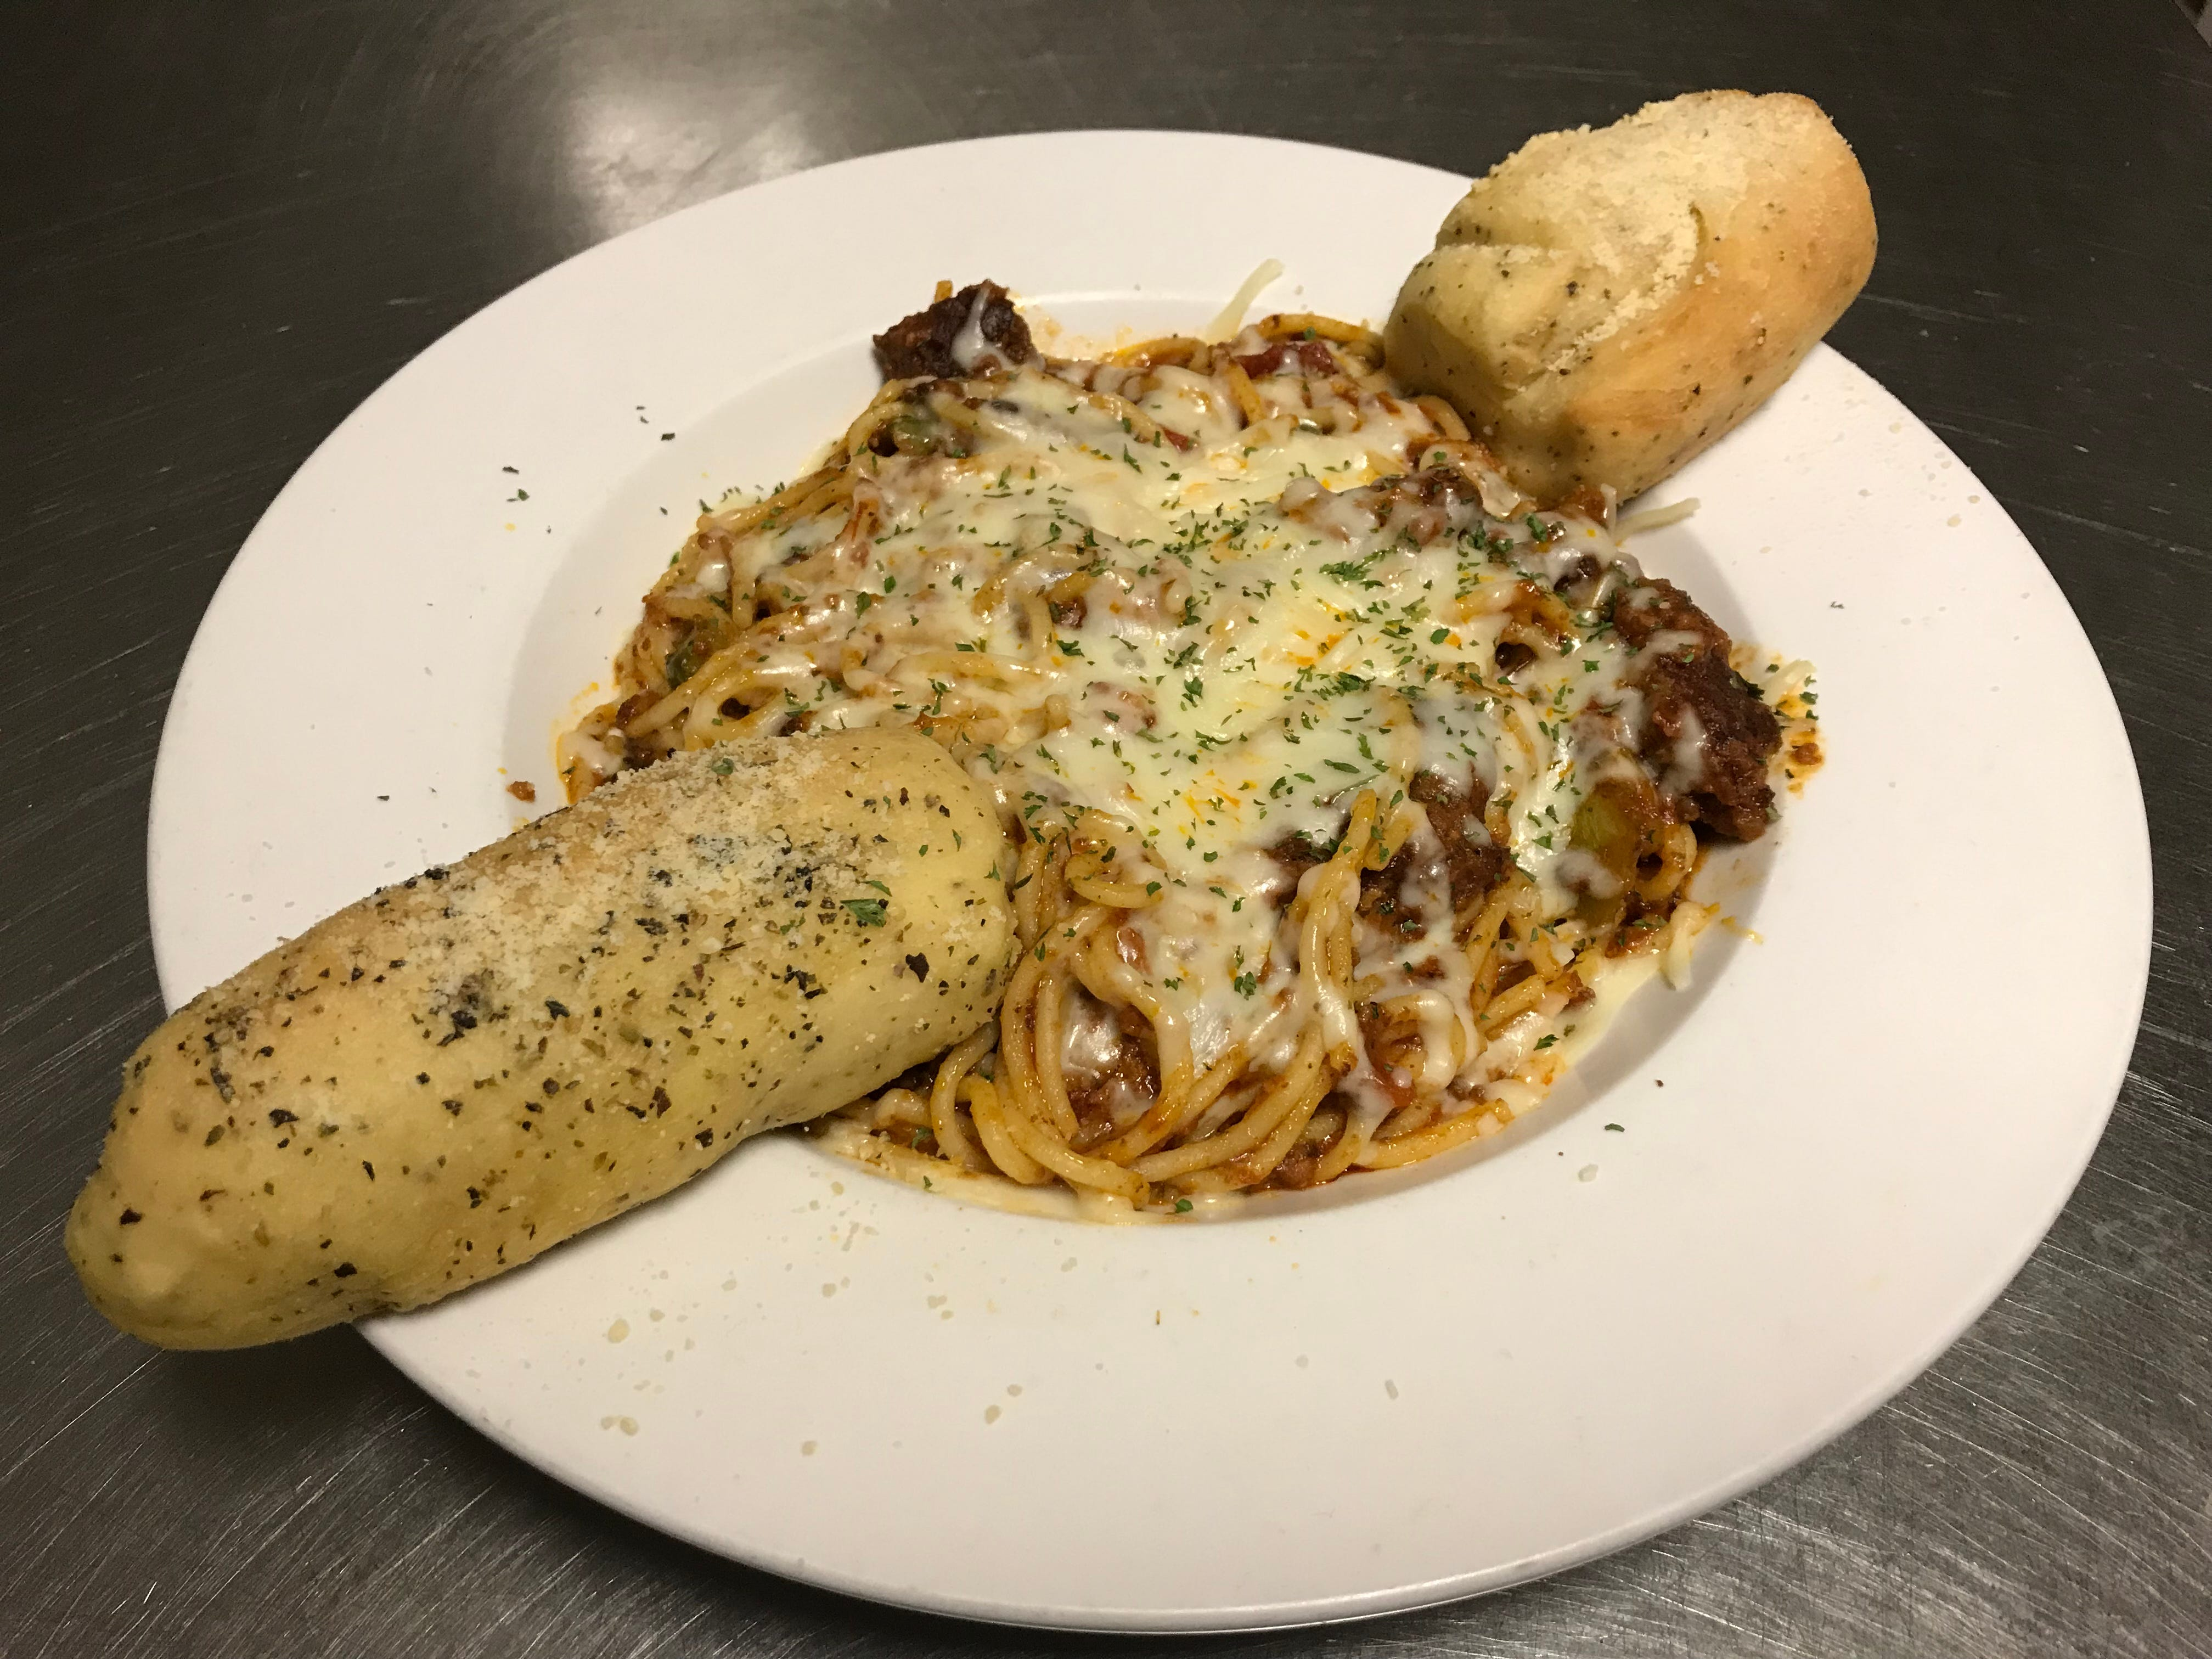 The Italian Spaghetti is served with Amalia's homemade meat sauce and garlic bread.